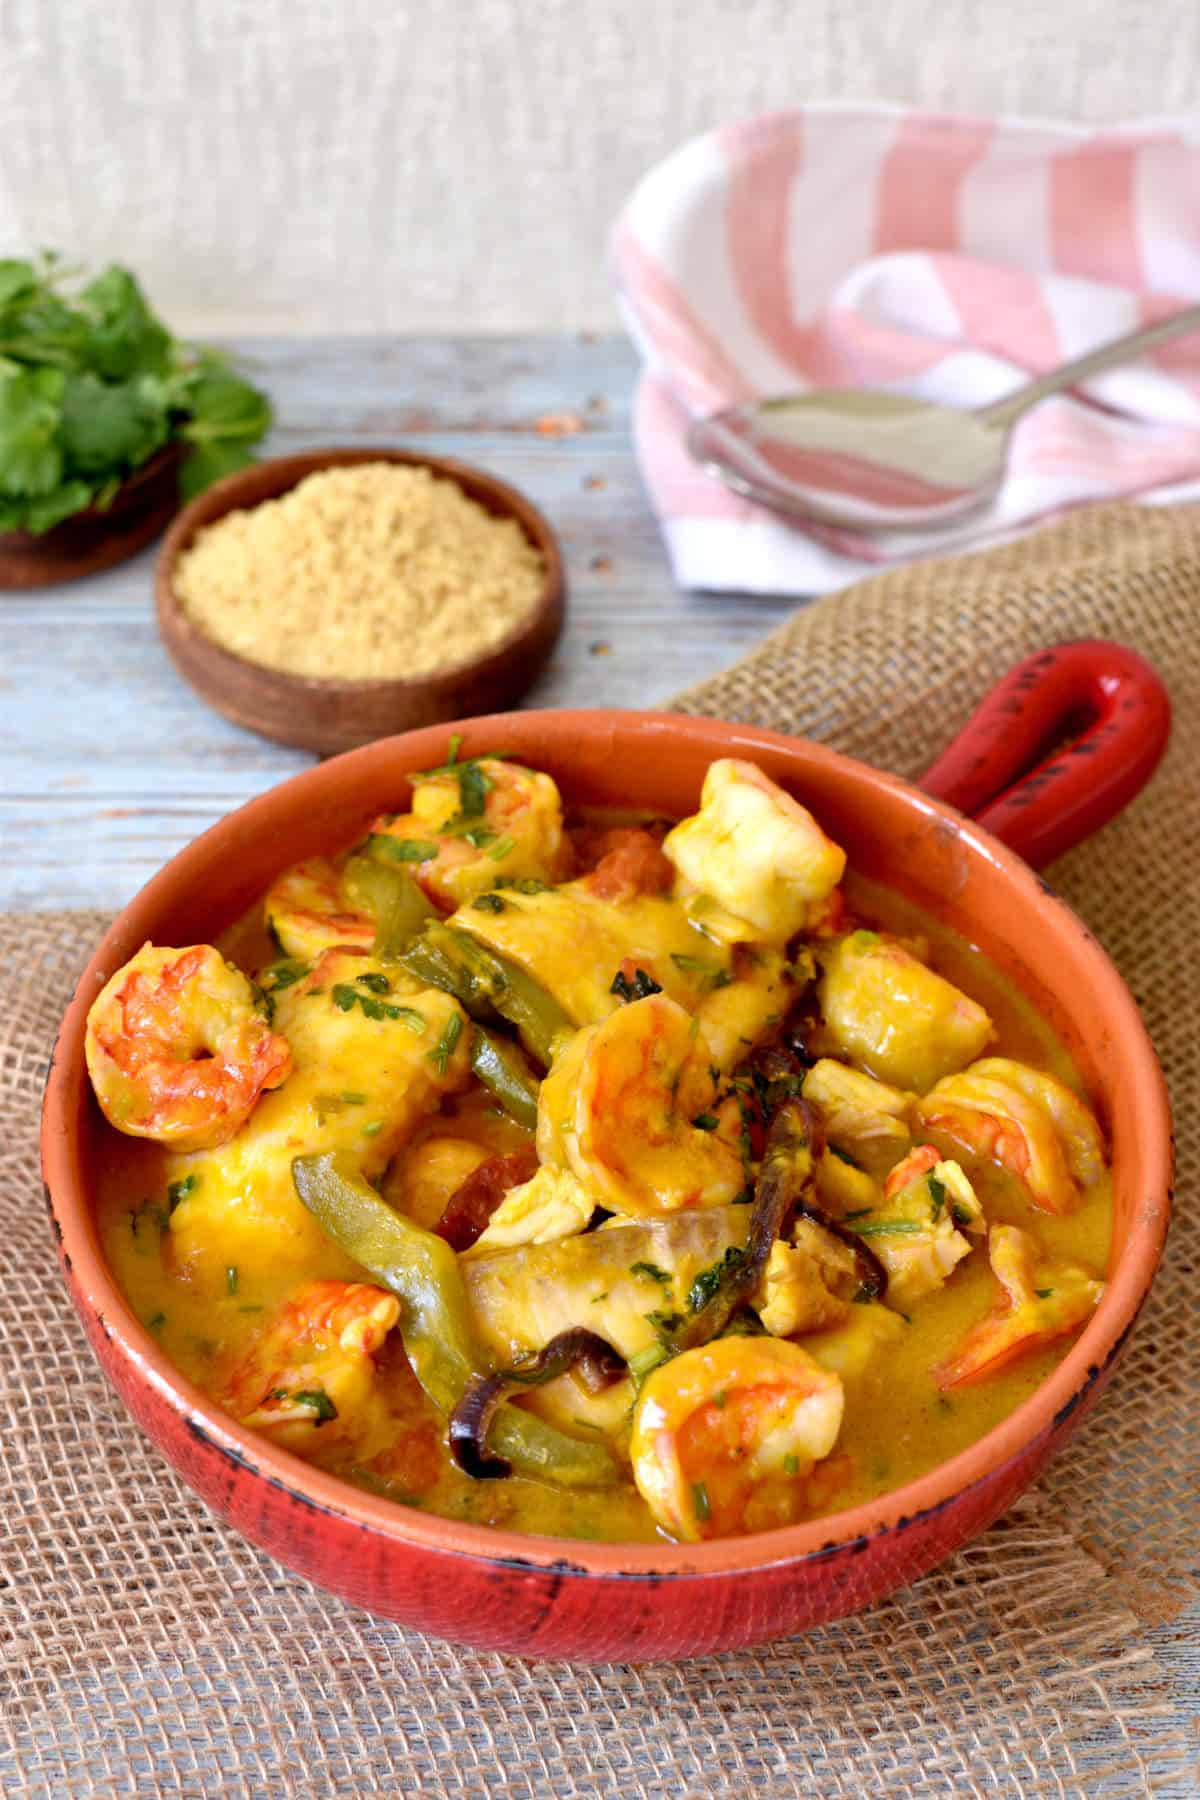 fish, shrimps, vegetables and cilantro cooked as a stew in a clay pan.